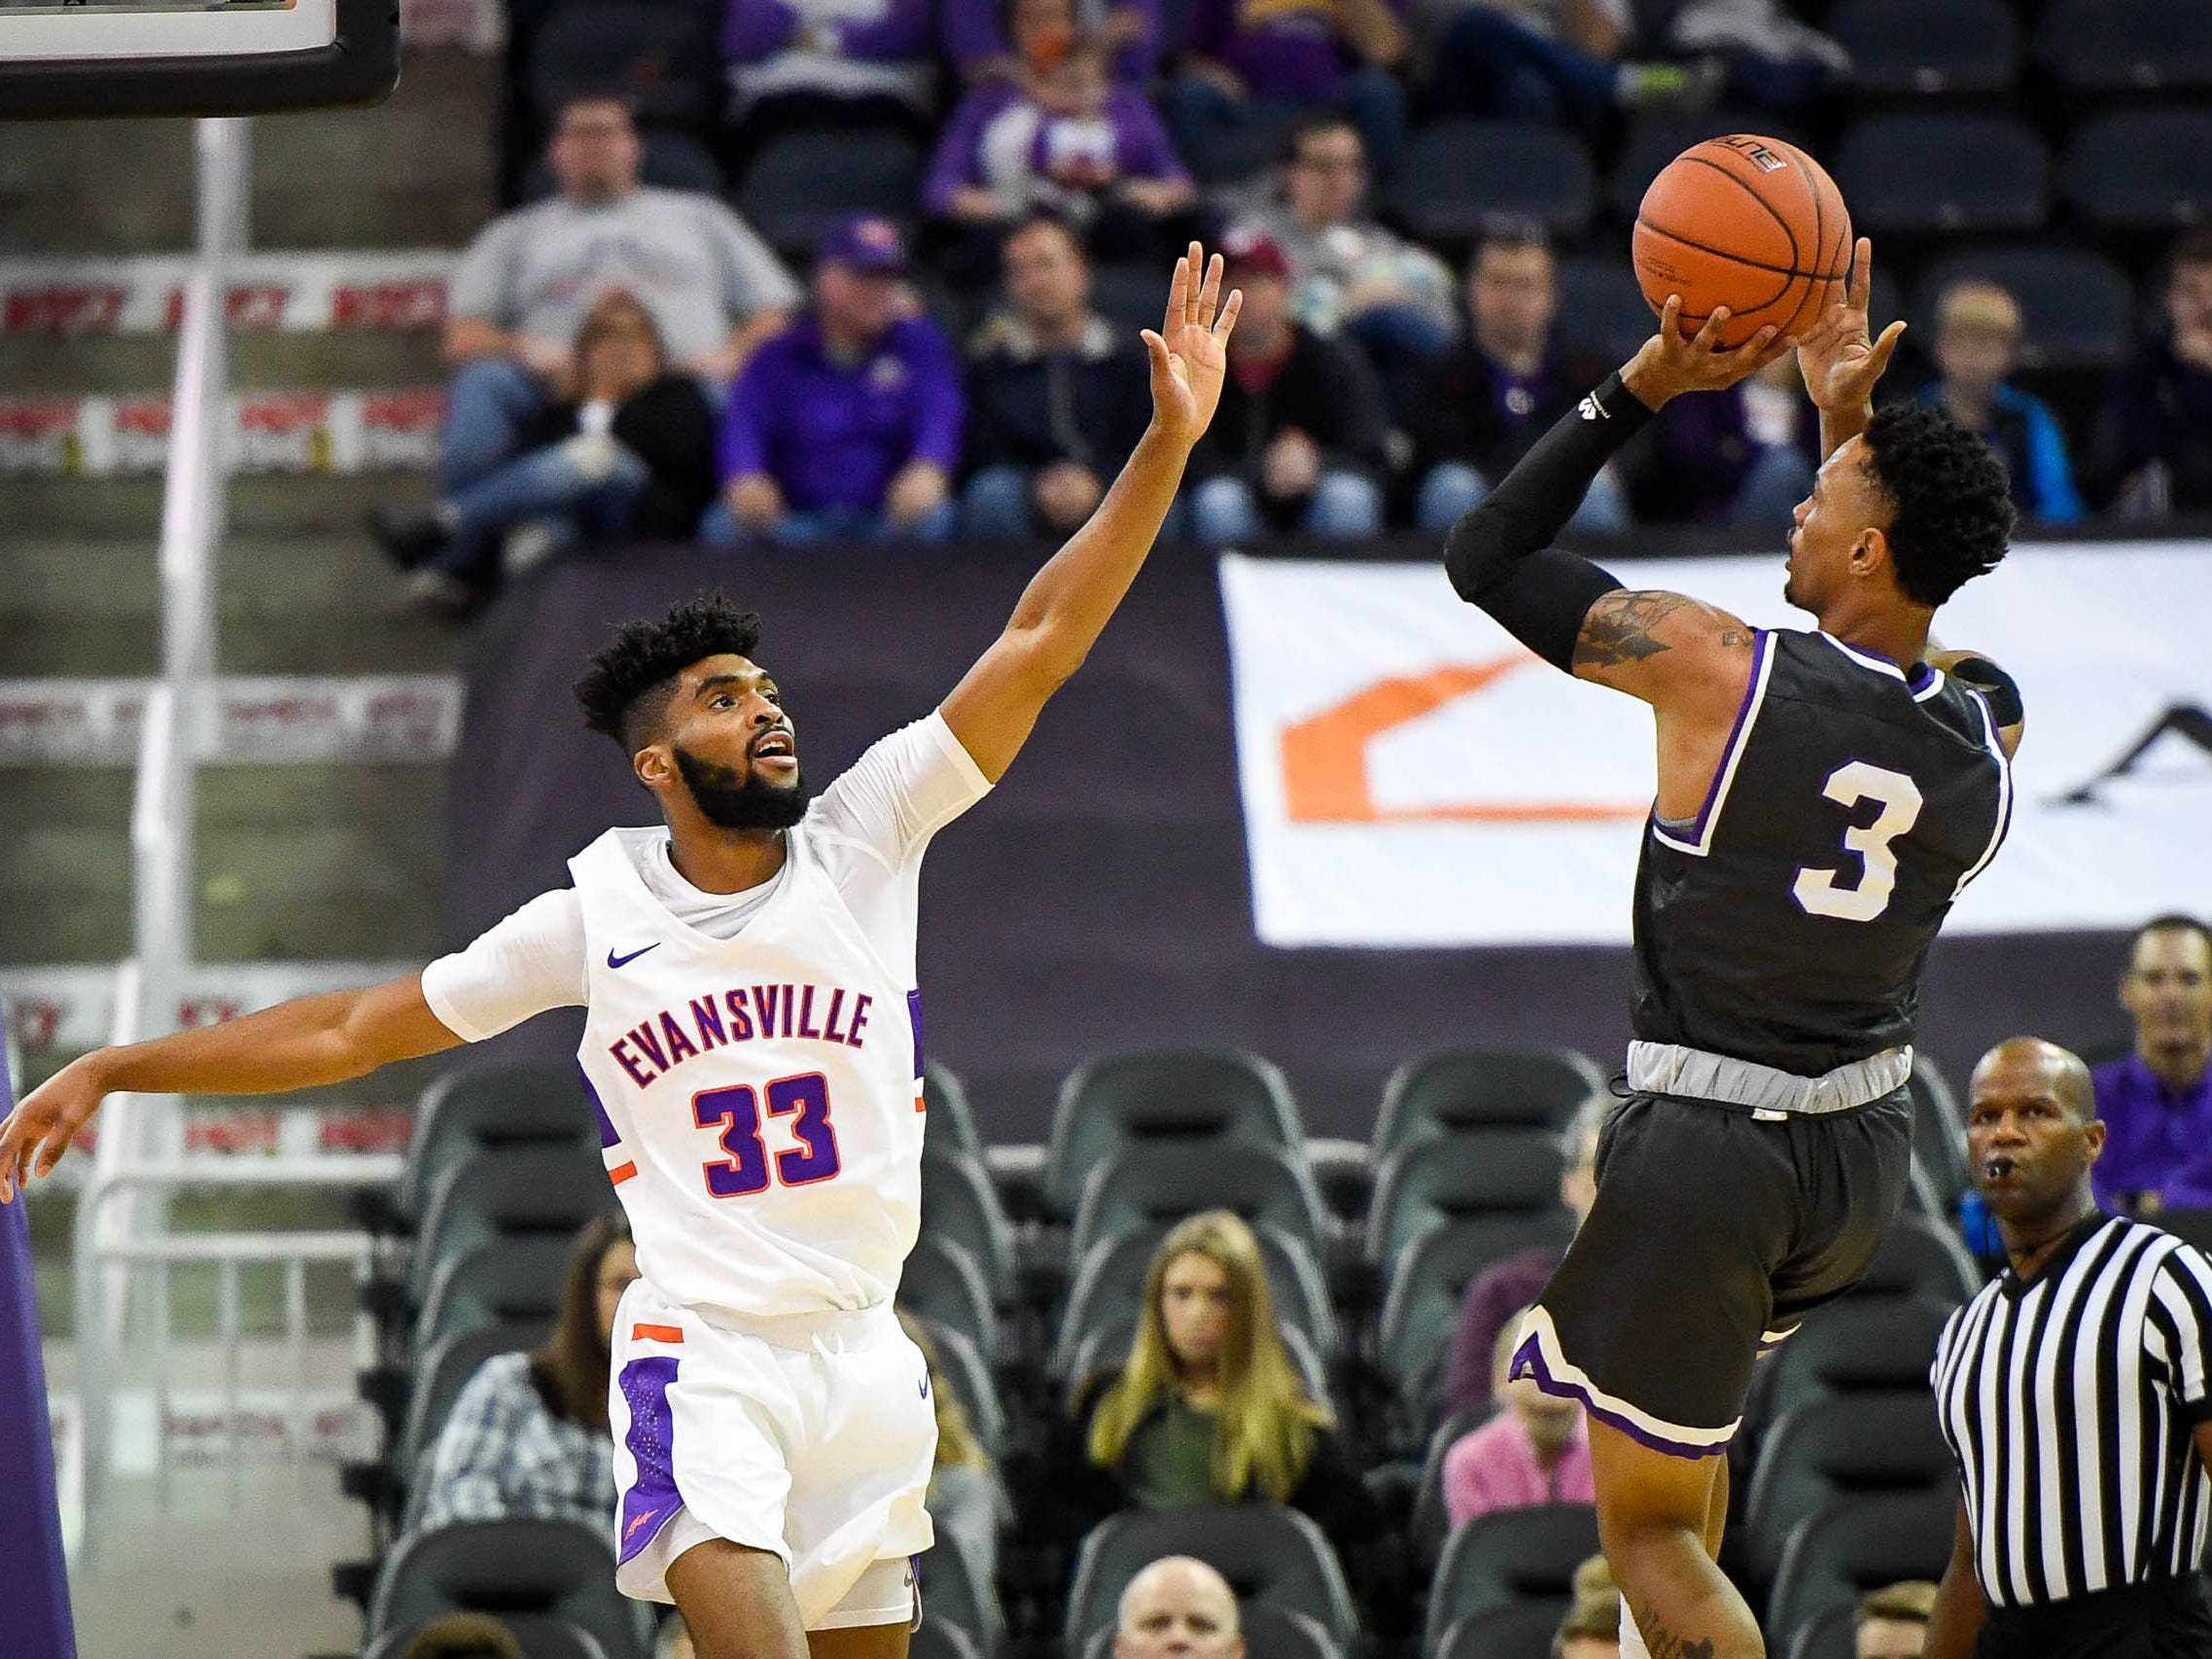 New Mexico Highlands' Gerad Davis(3) shoots over University of Evansville's K.J. Riley (33) as the University of Evansville Purple Aces play the New Mexico Highlands Cowboys in a exhibition game at the Ford Center Saturday, November 3, 2018.